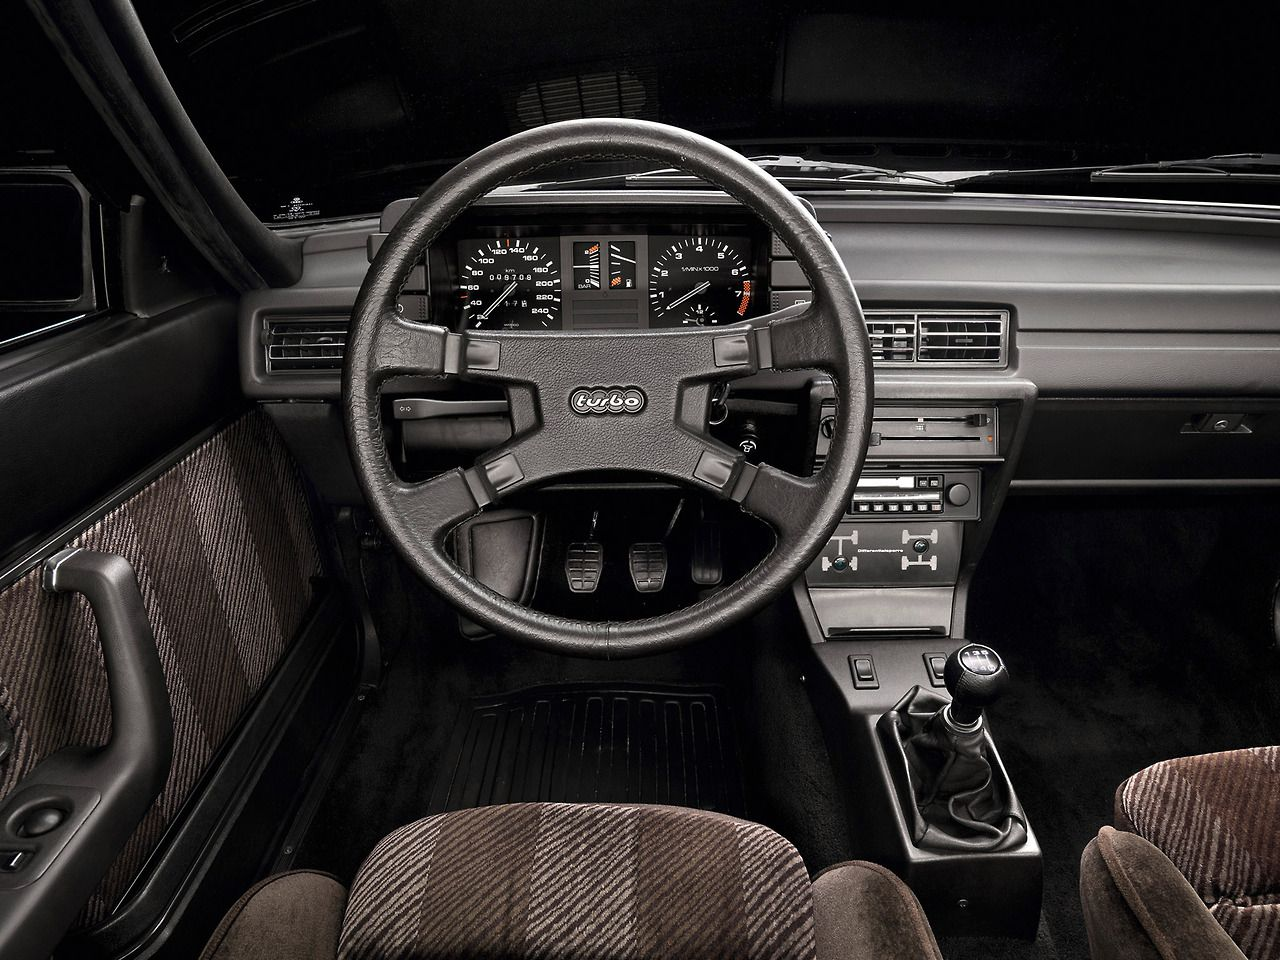 Audi Quattro 81 Interior With Analogue Clocks And The Cable